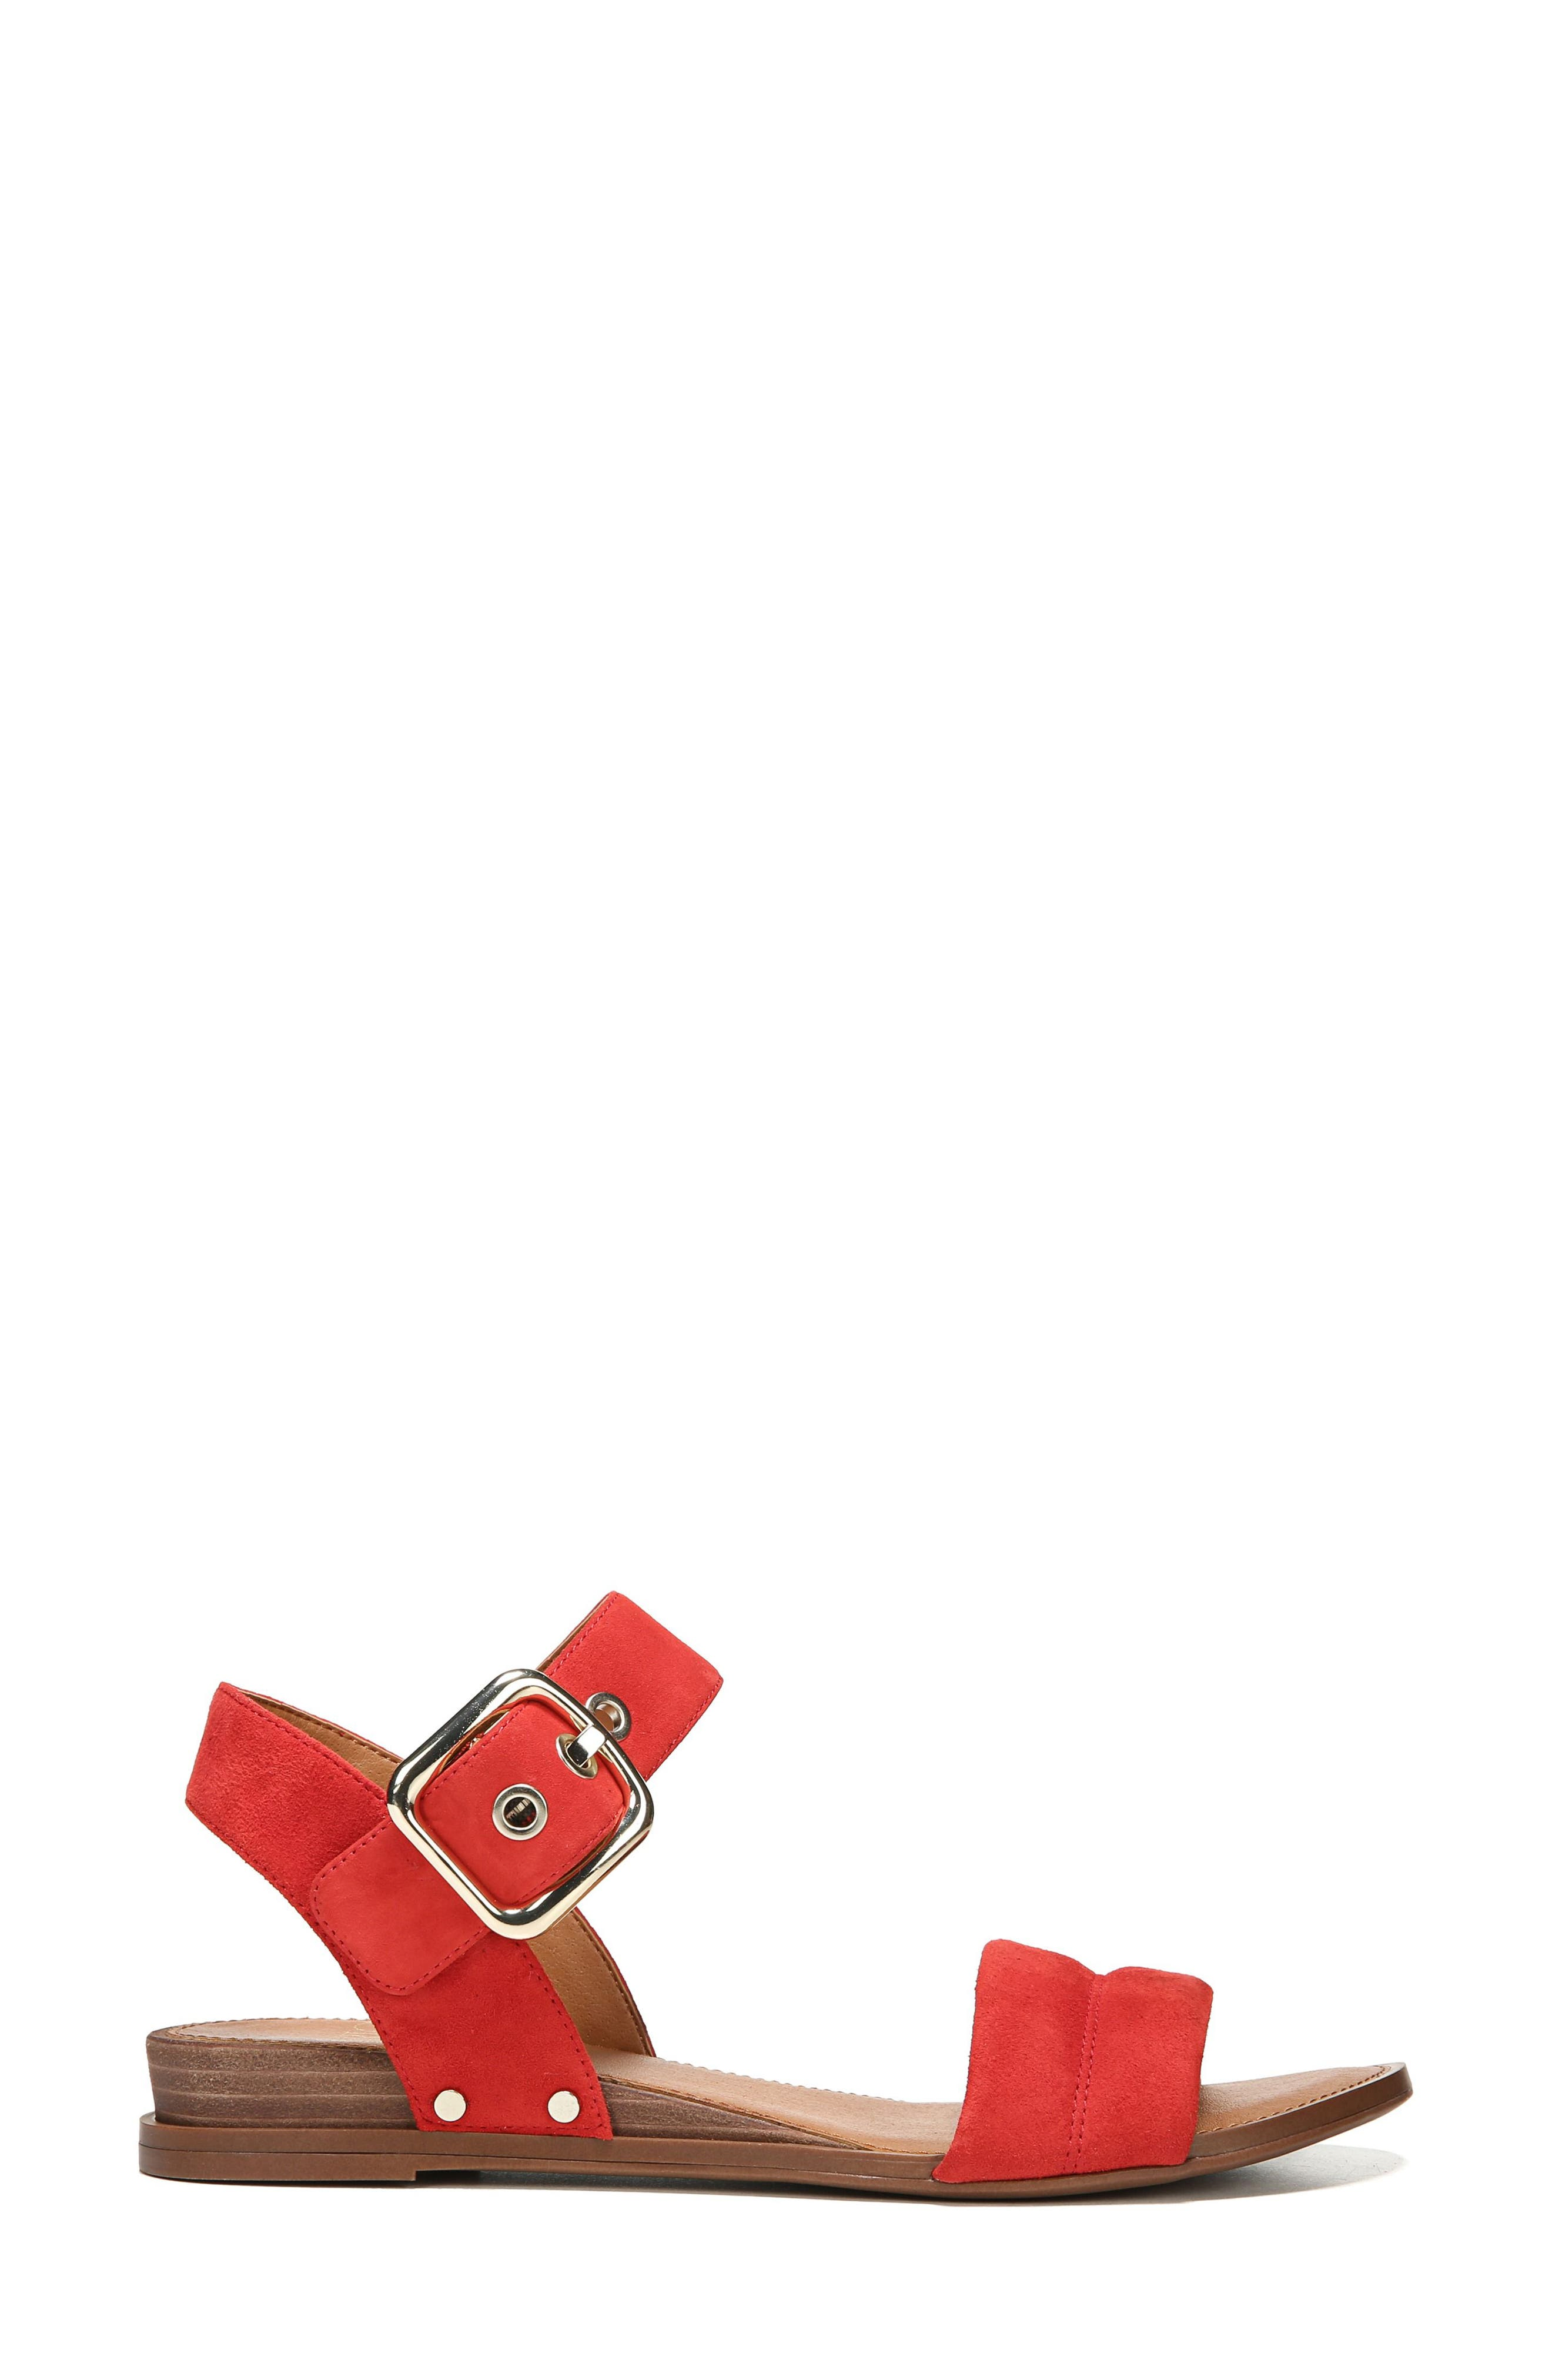 Patterson Low Wedge Sandal,                             Alternate thumbnail 3, color,                             Pop Red Suede